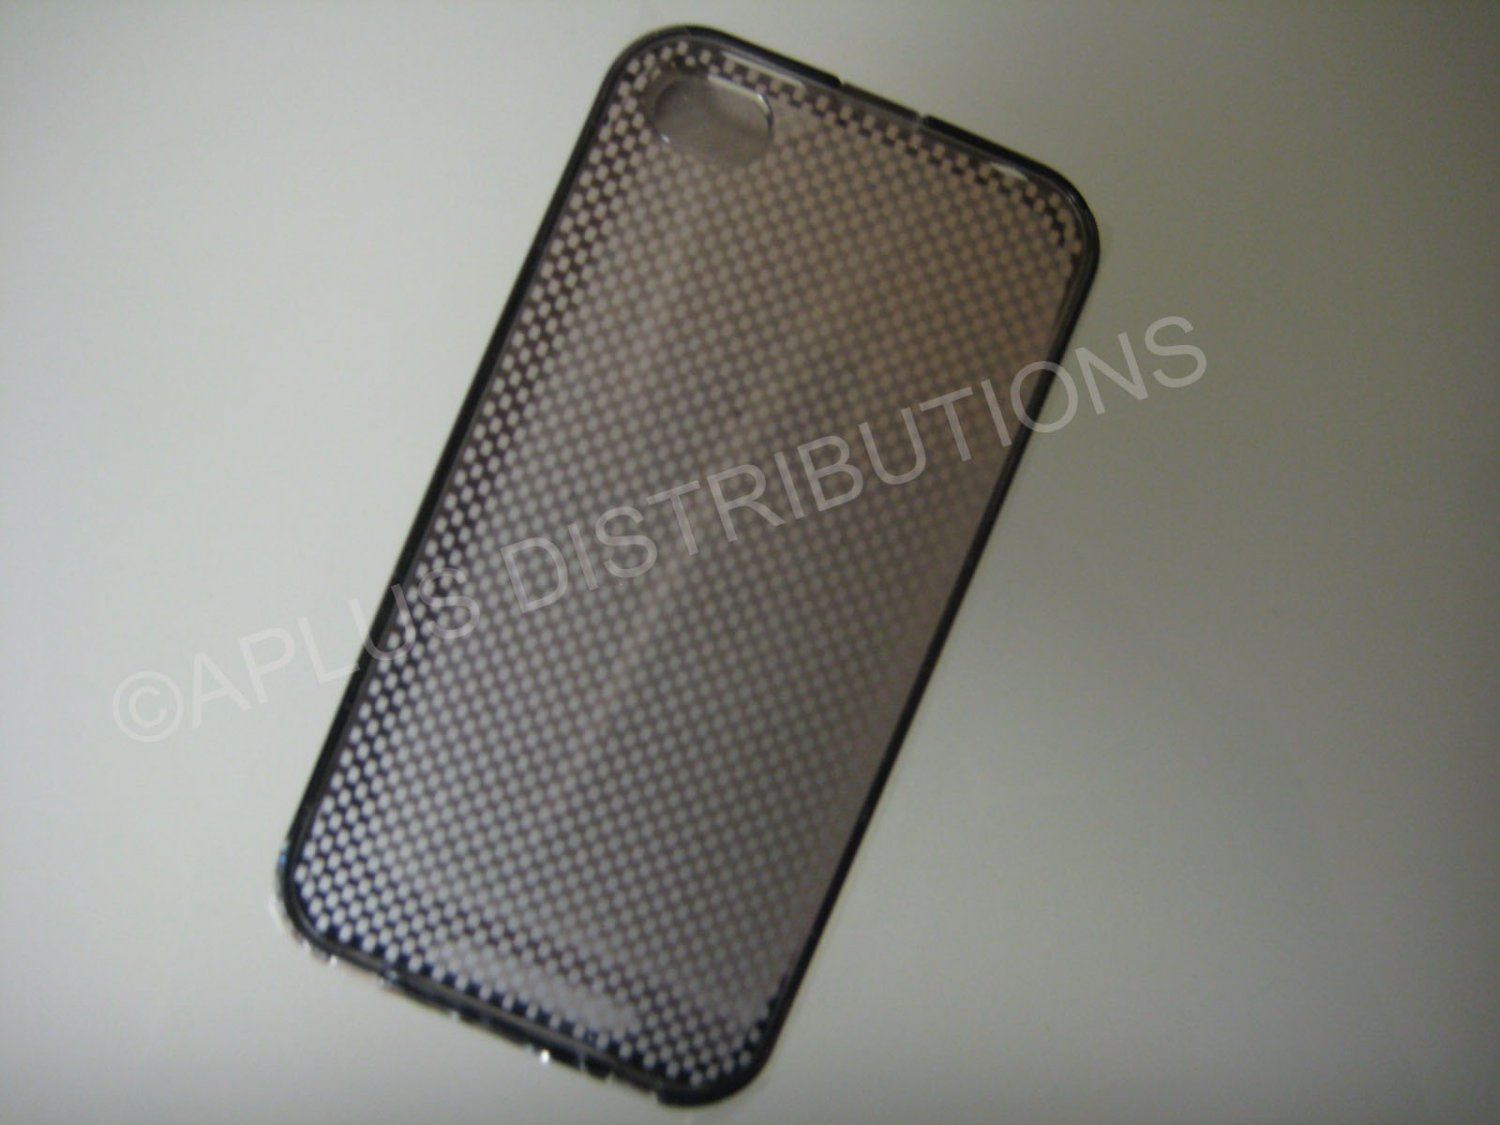 New Black Transparent Checkered Pattern Hard Protective Cover For iPhone 4 - (0147)